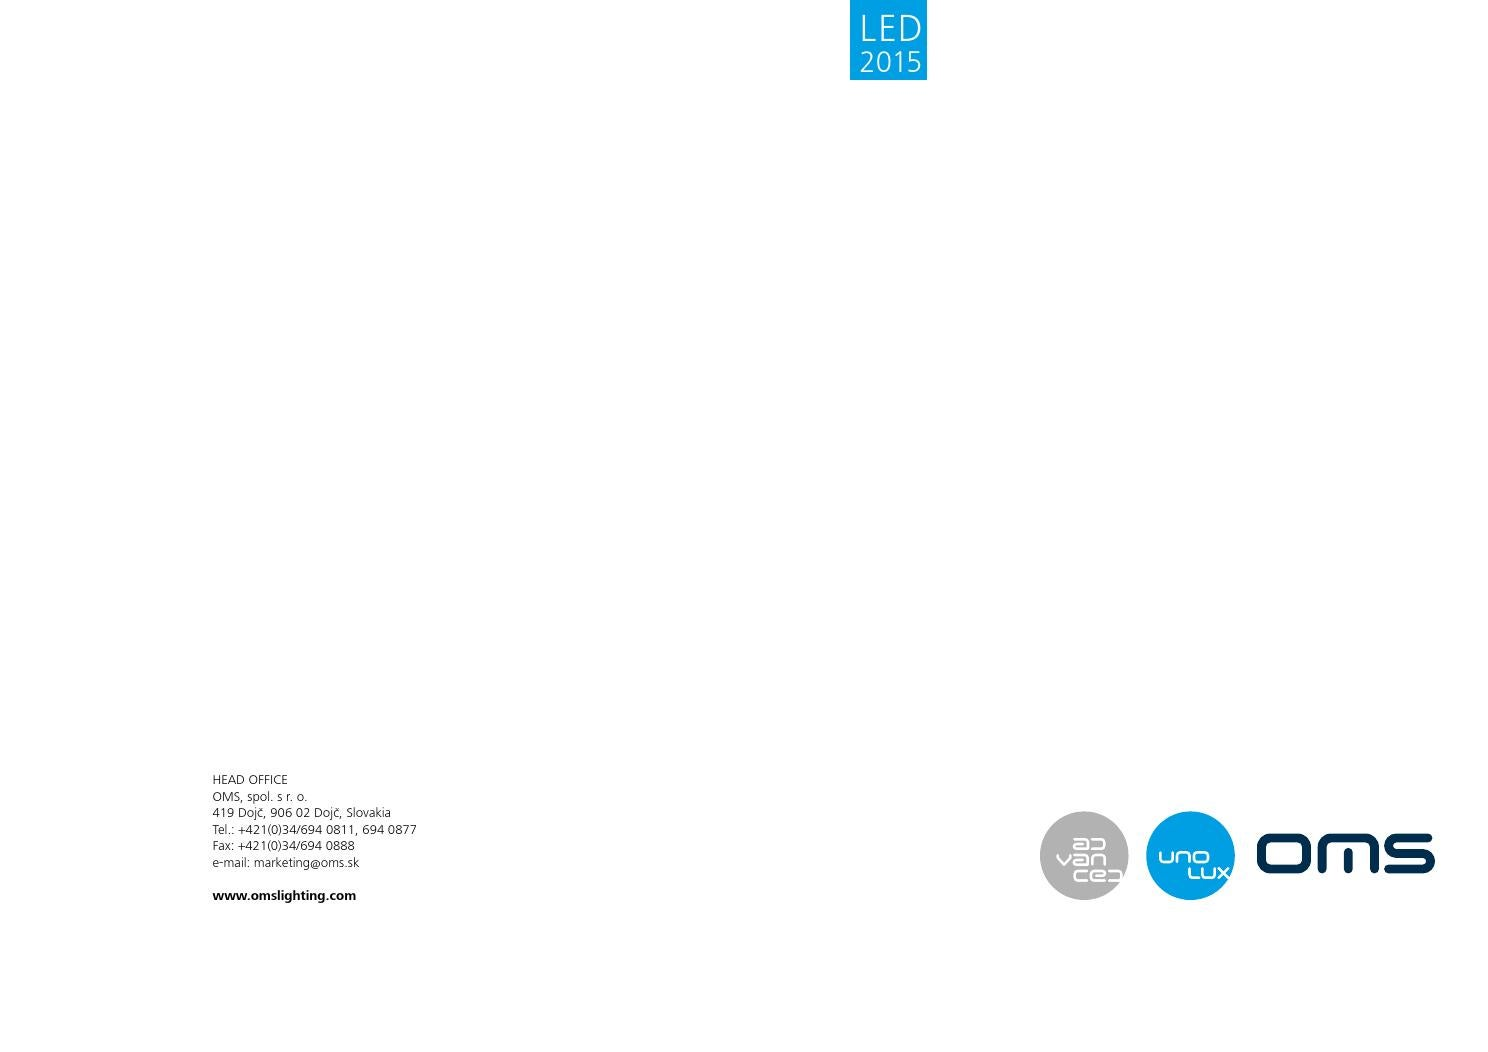 Oms Led Catalogue 2015 By Right Light Issuu